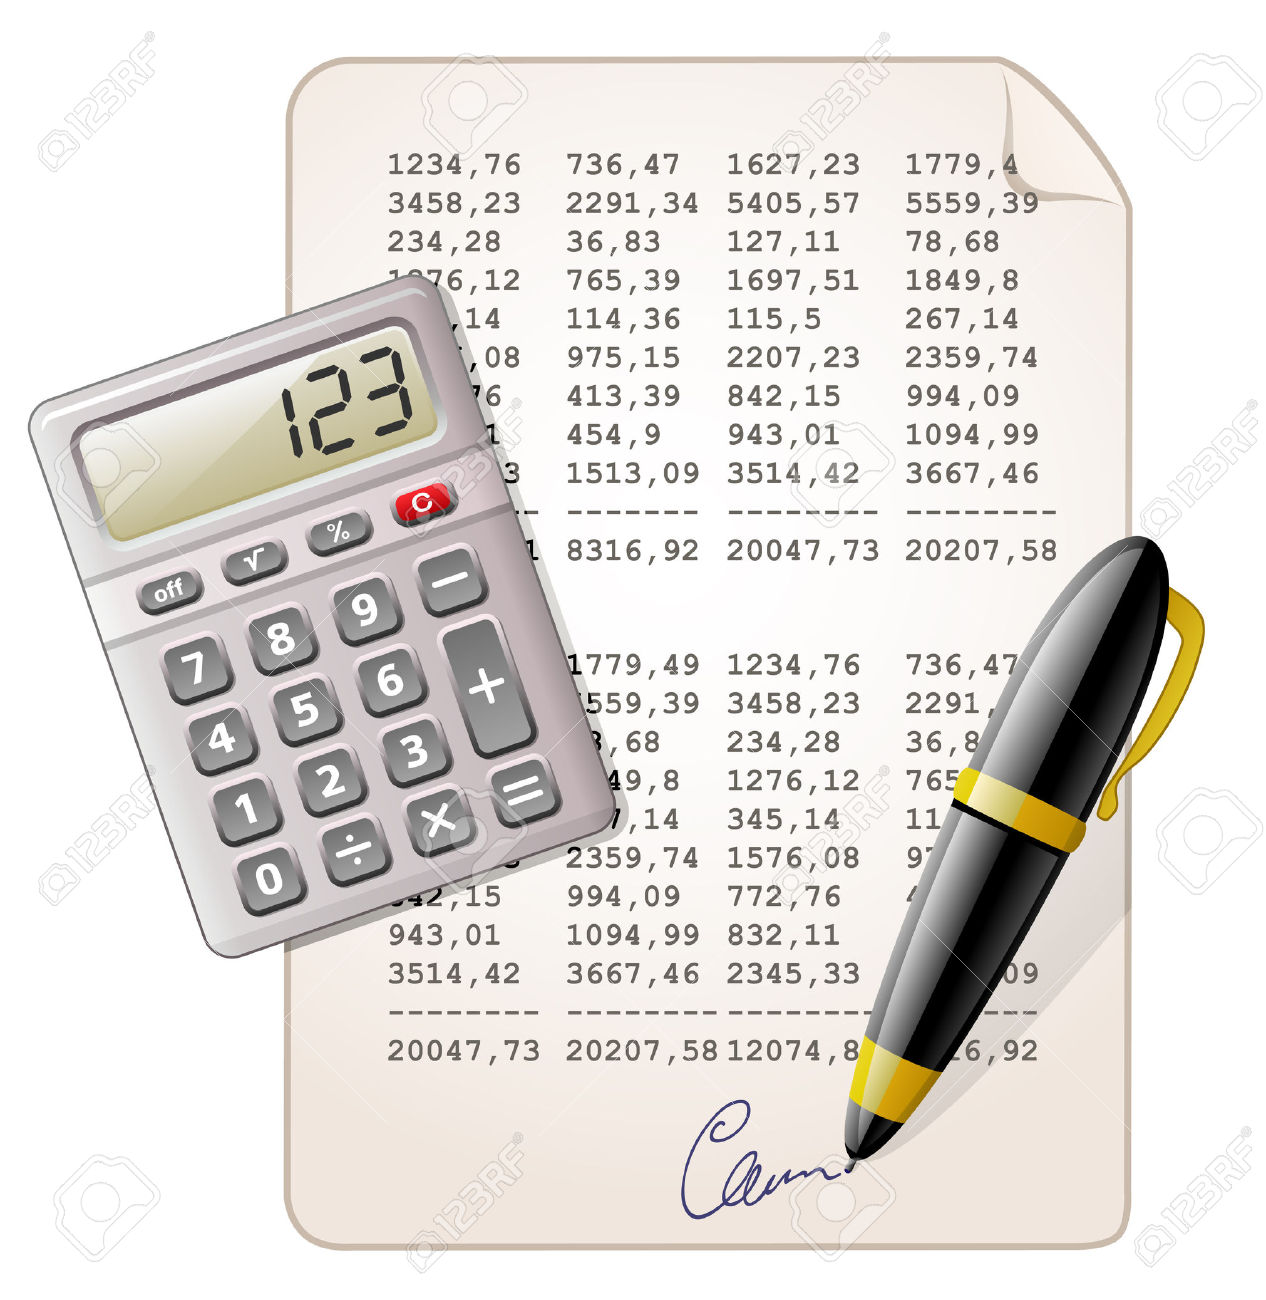 Free Cliparts Accounting Machines Download Free Clip Art Free Clip Art On Clipart Library